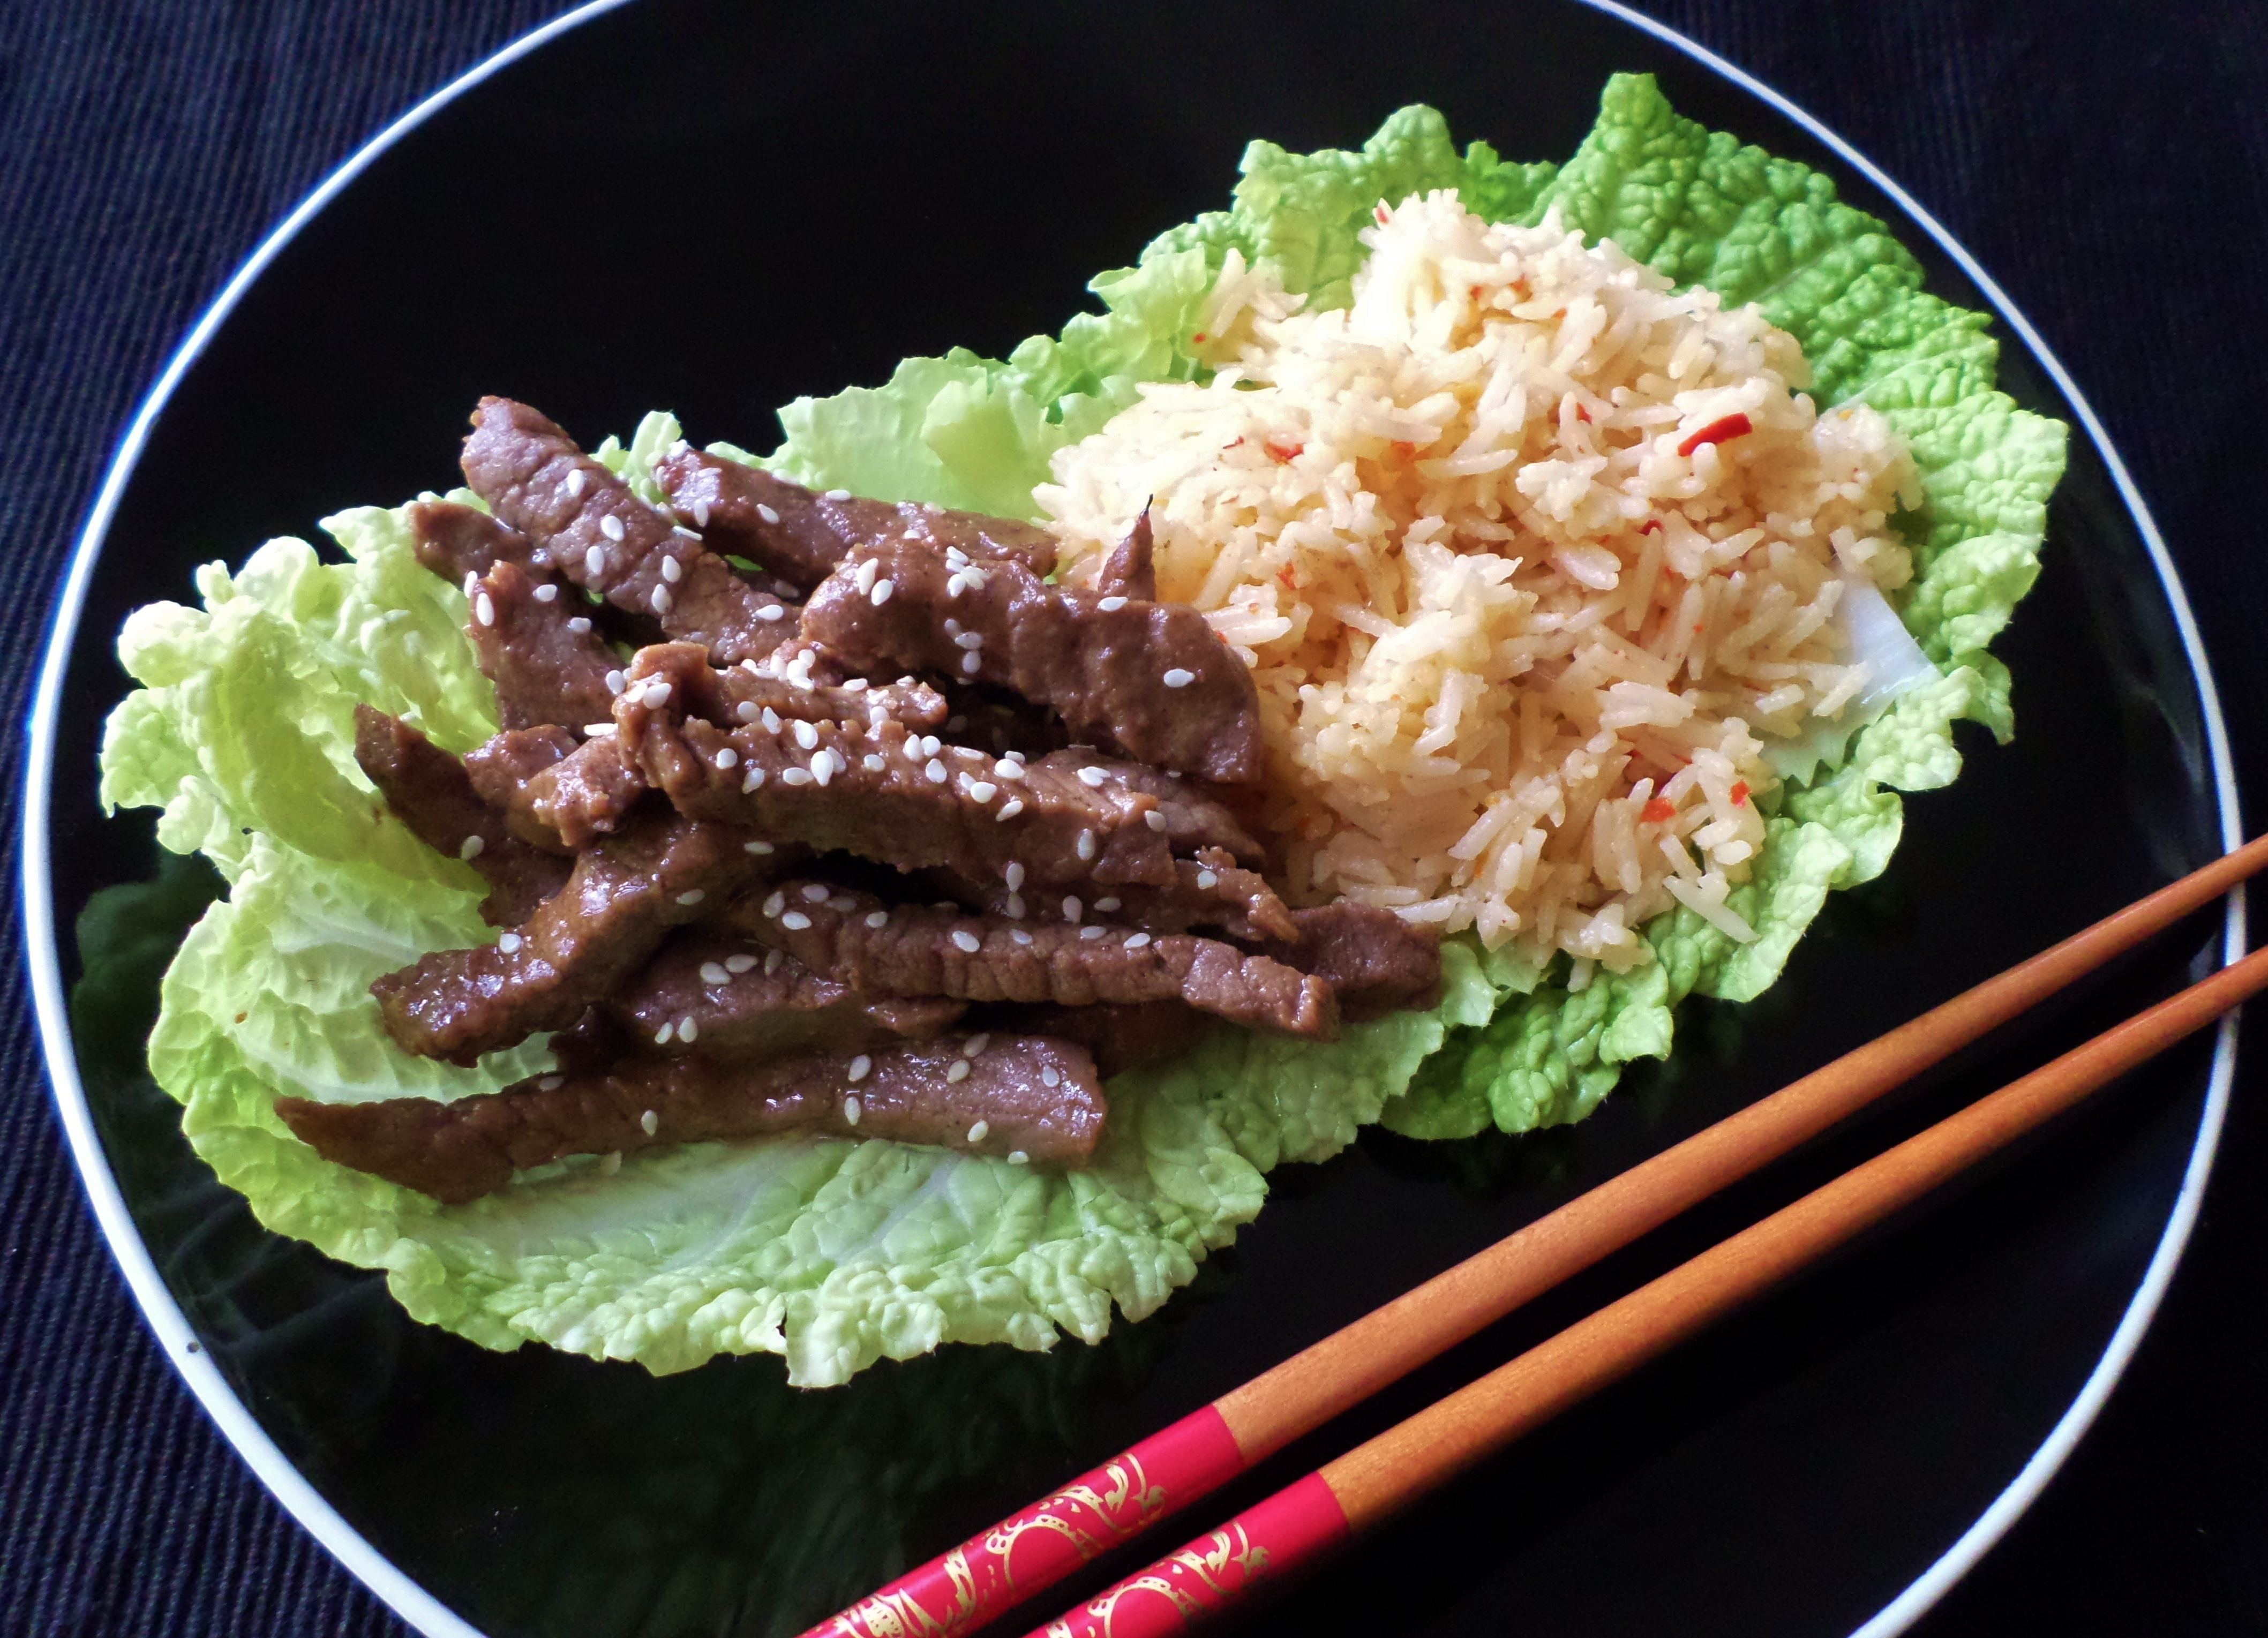 Hoisin beef and rice in cabbage bowls recipe adaptors for I want to cook something different for dinner